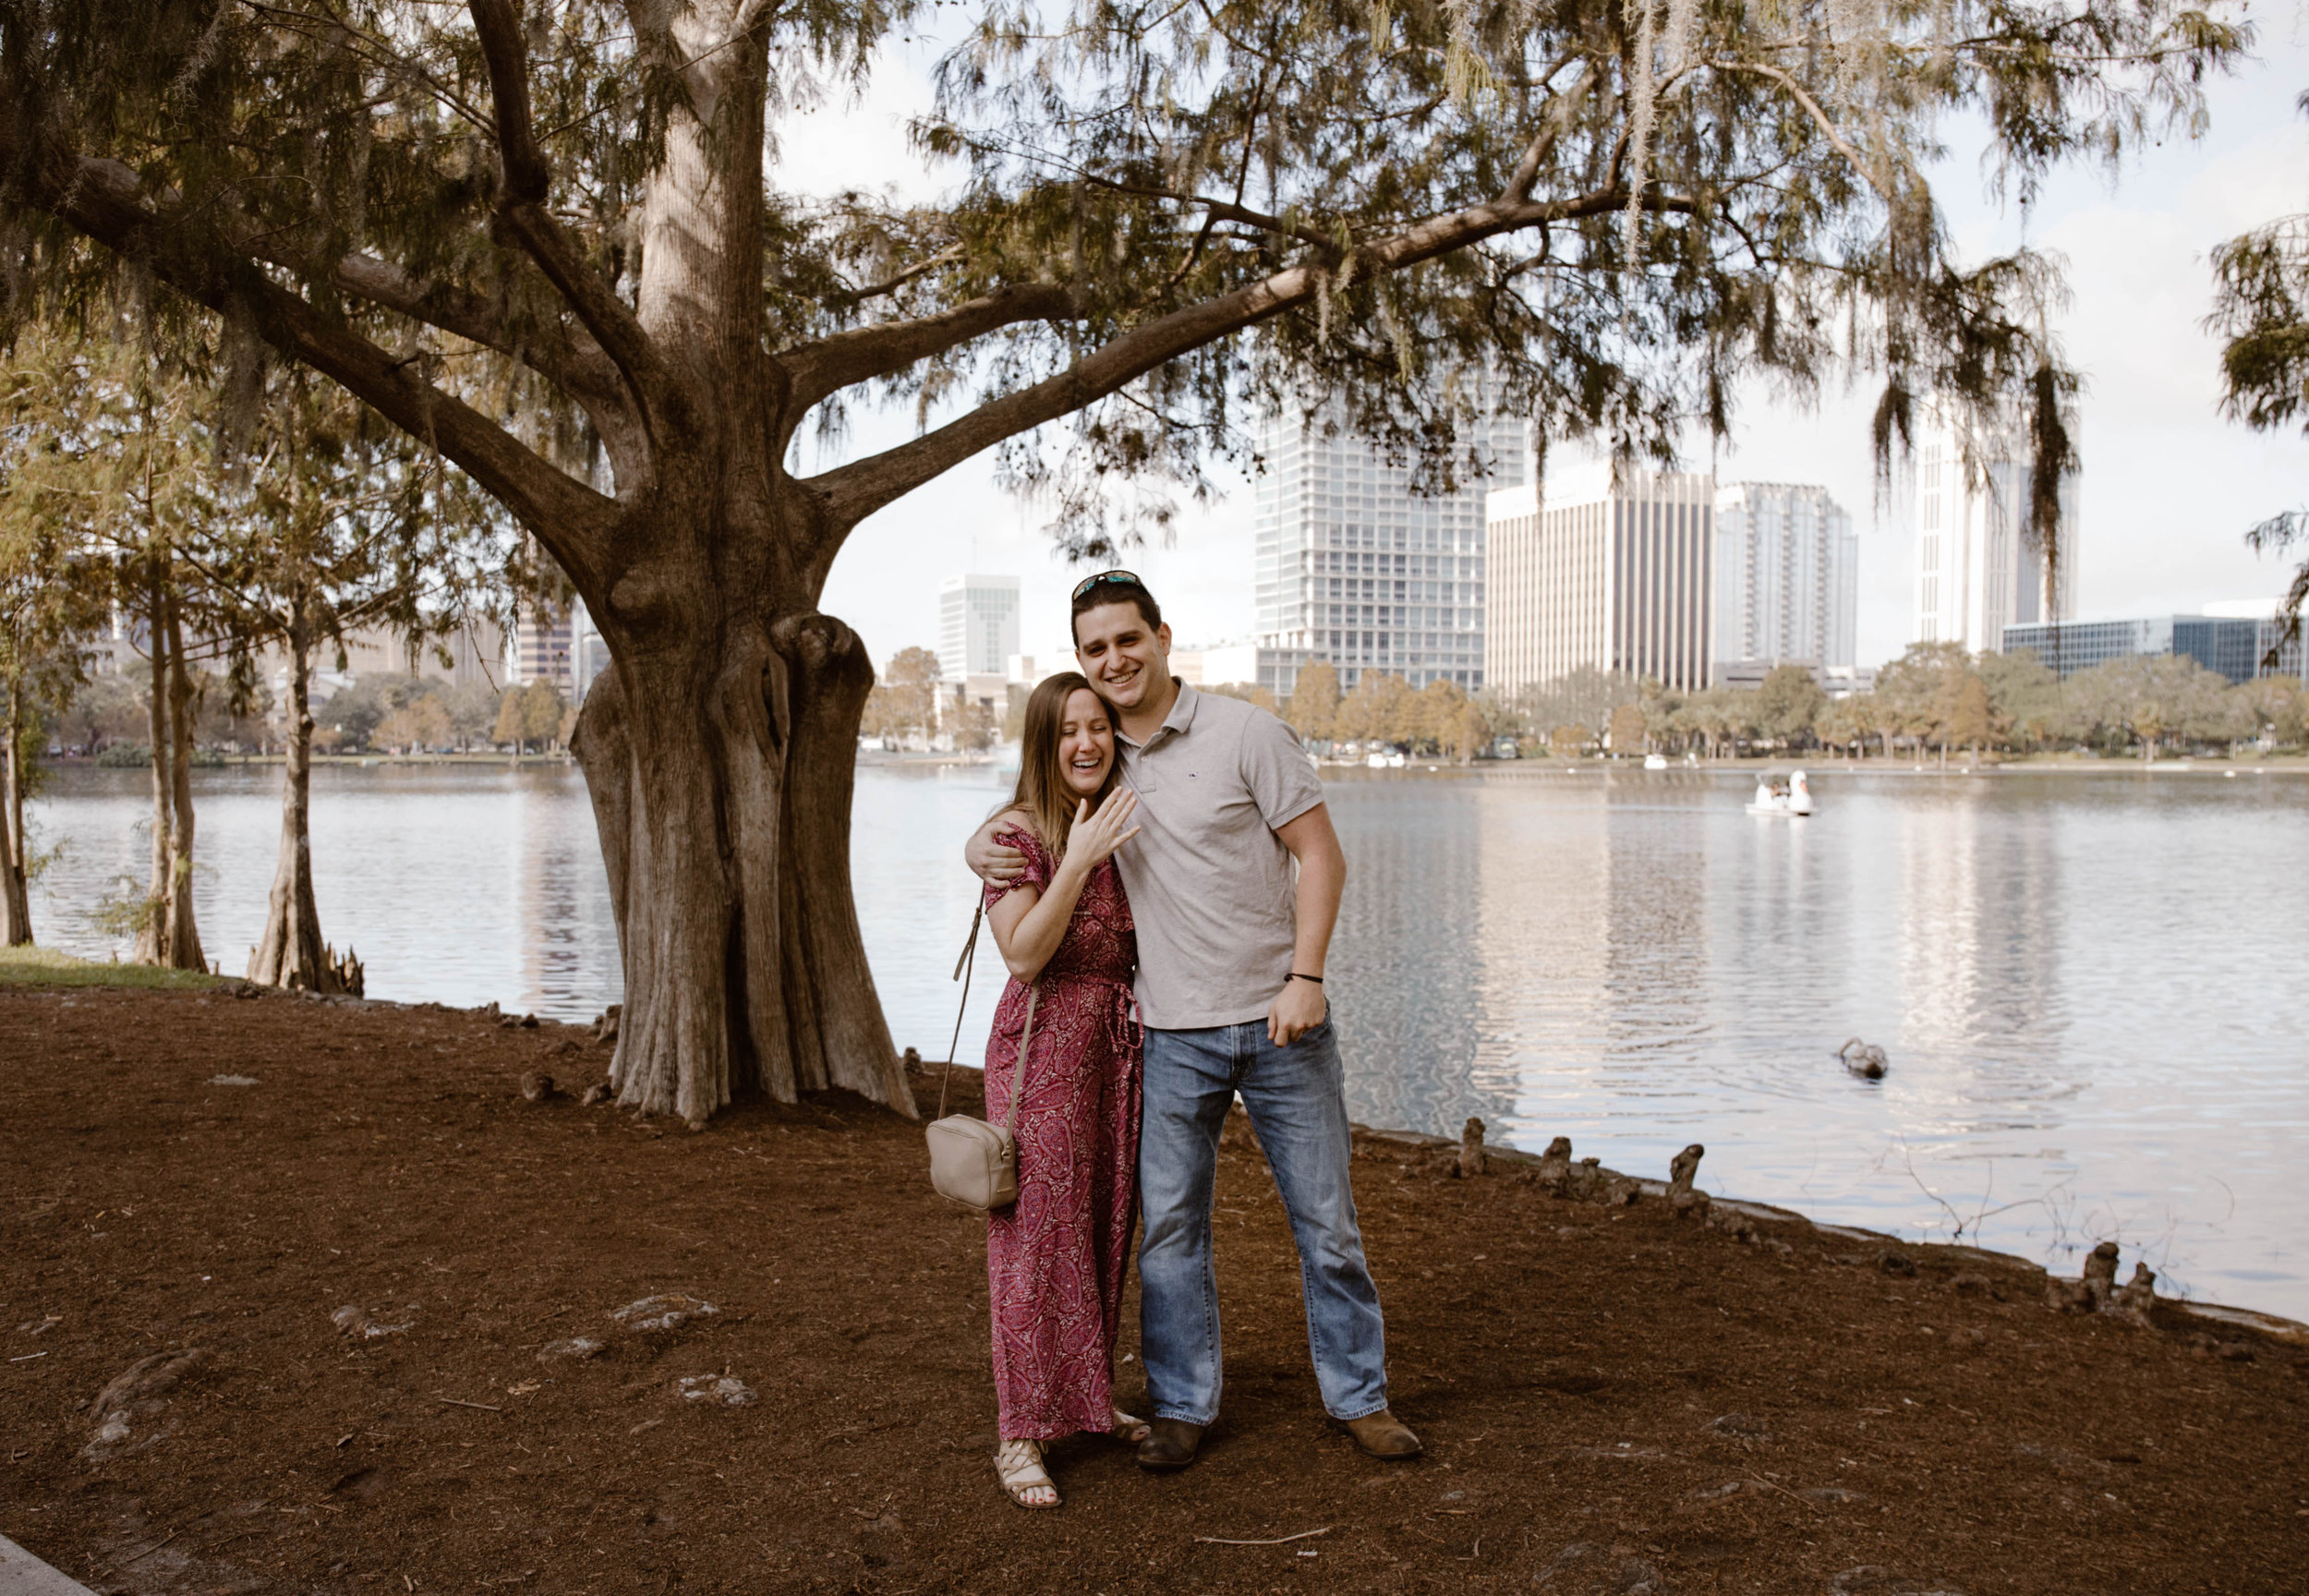 Surprise Proposal | Jason and Devin  | Vanessa Boy | vanessaboy.com-224.jpg